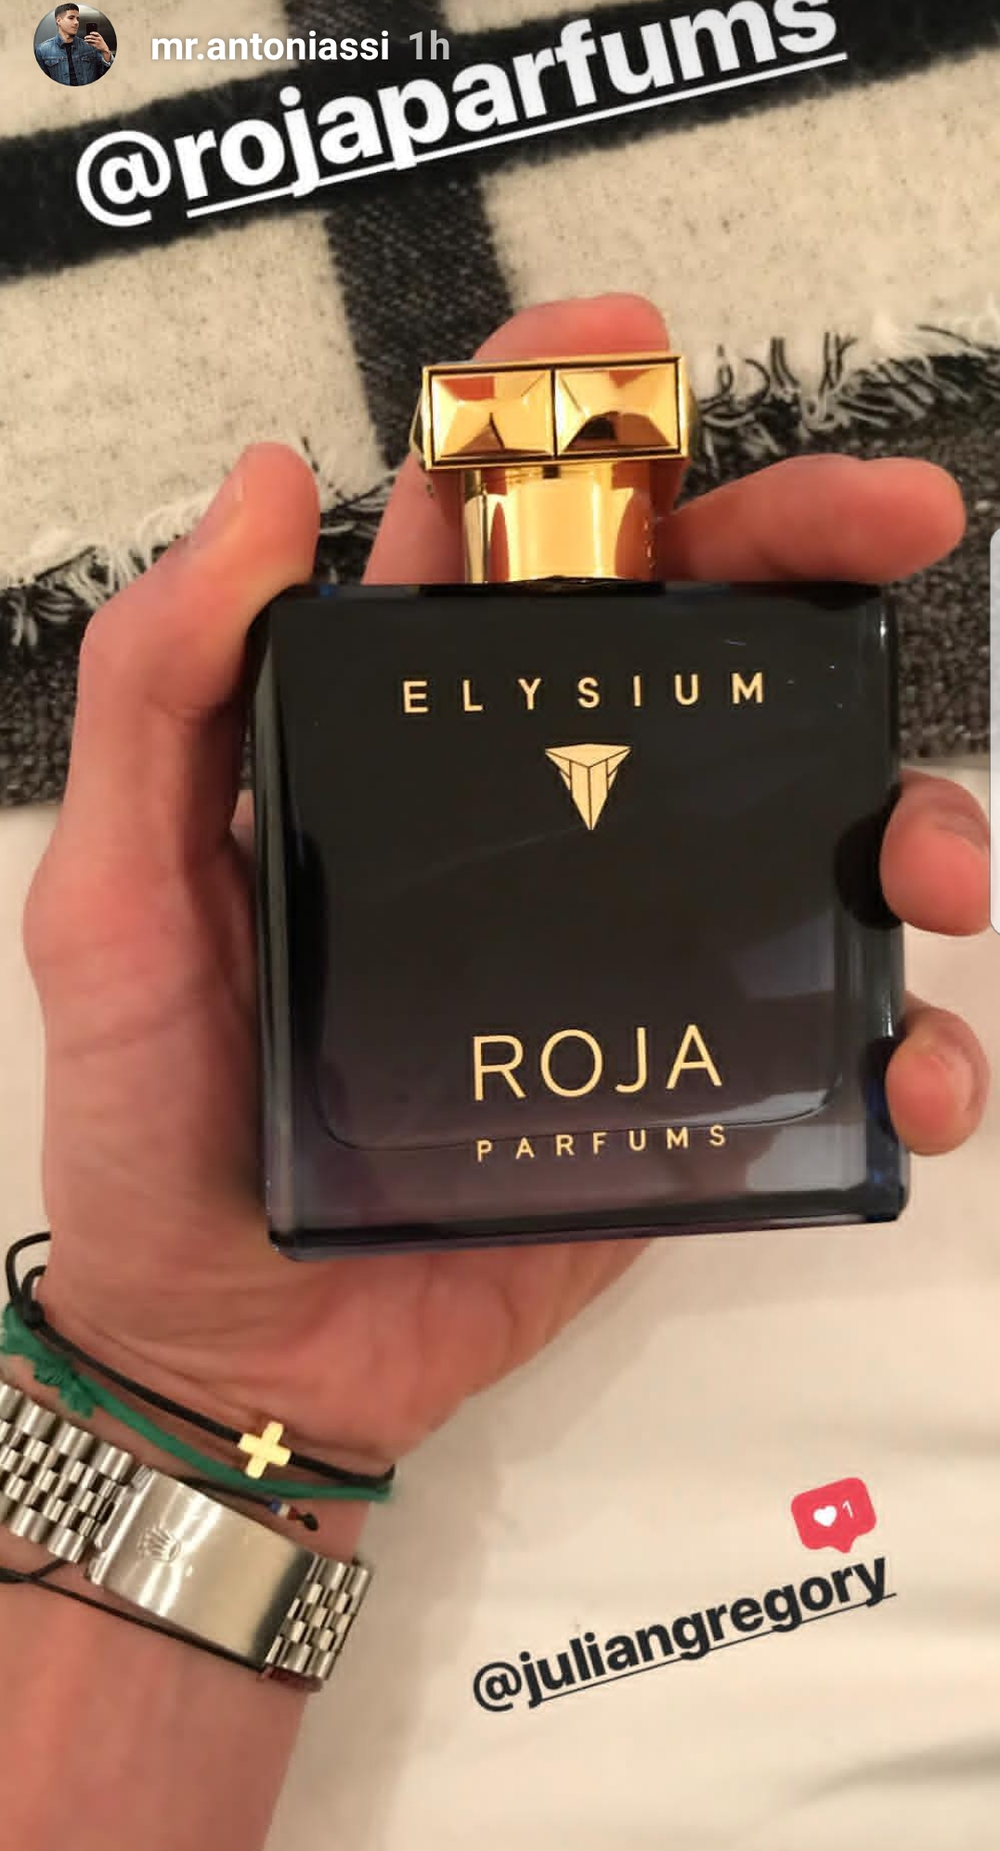 julian gregory pr, pr & marketing, public relations, london pr consultant, fashion pr, roja parfums, influencer seeding, product seeing - Delber Antoniassi.png